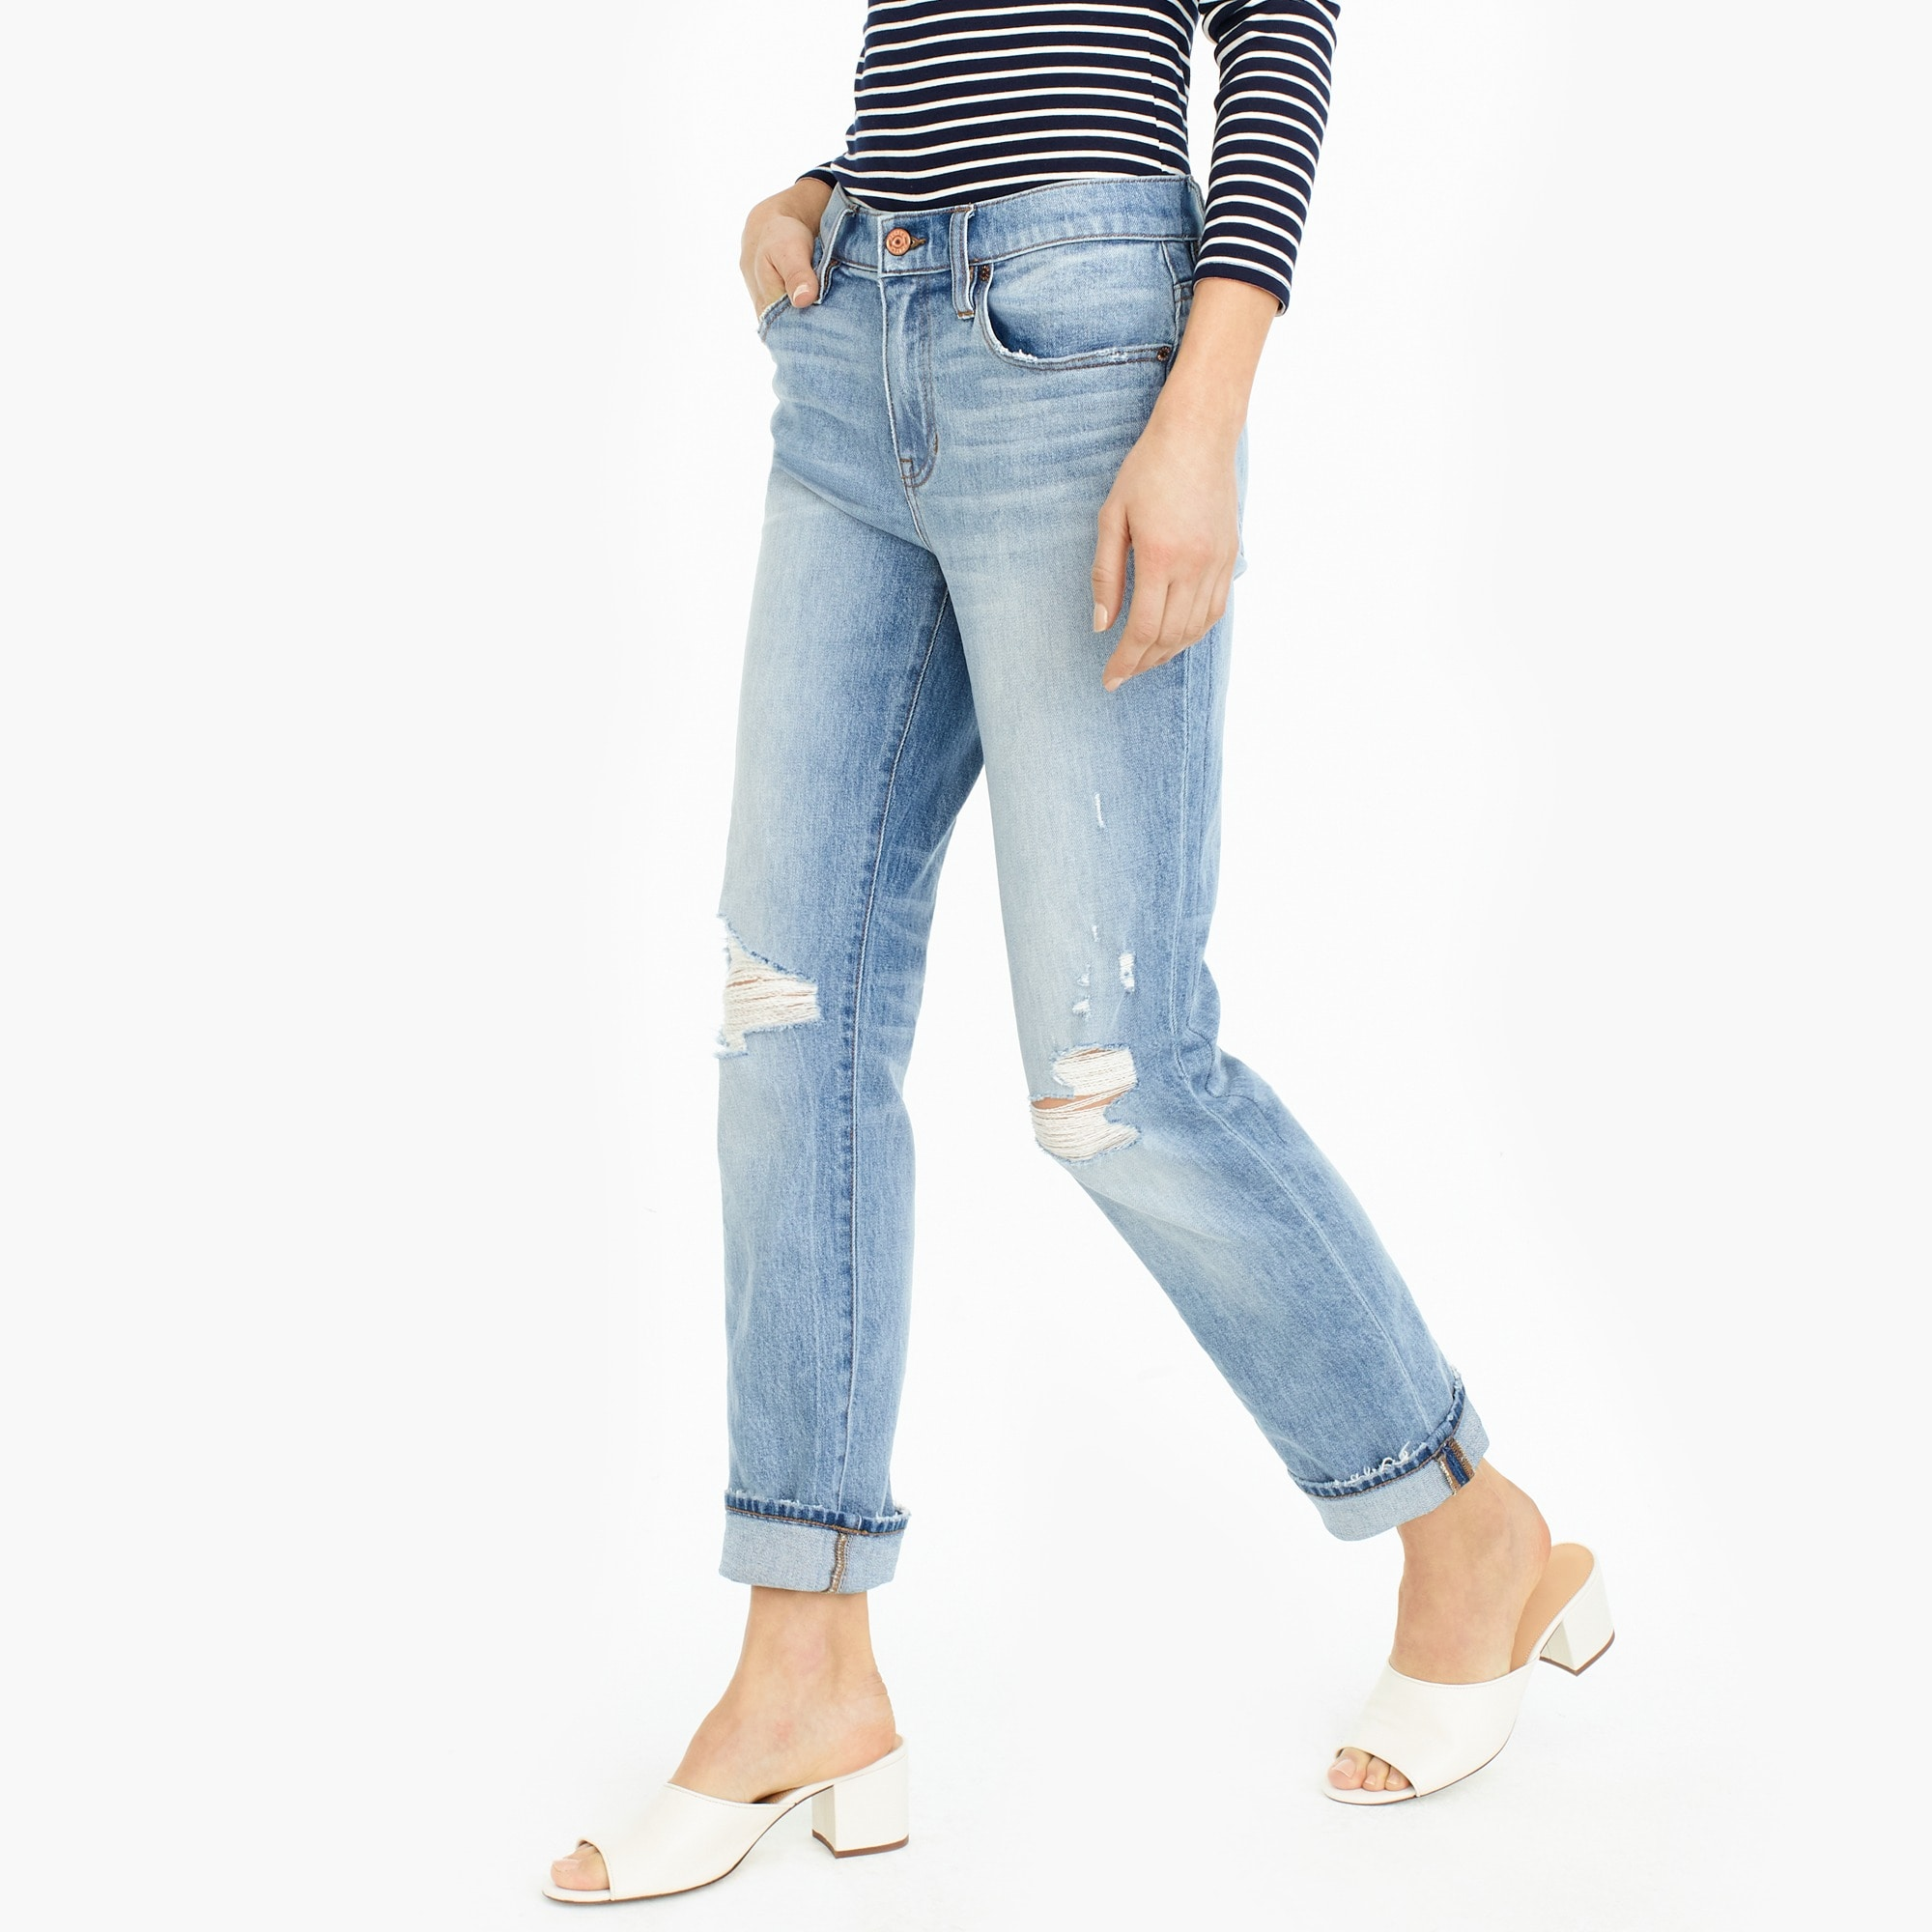 Image 1 for Slim boyfriend jean in Cedar wash